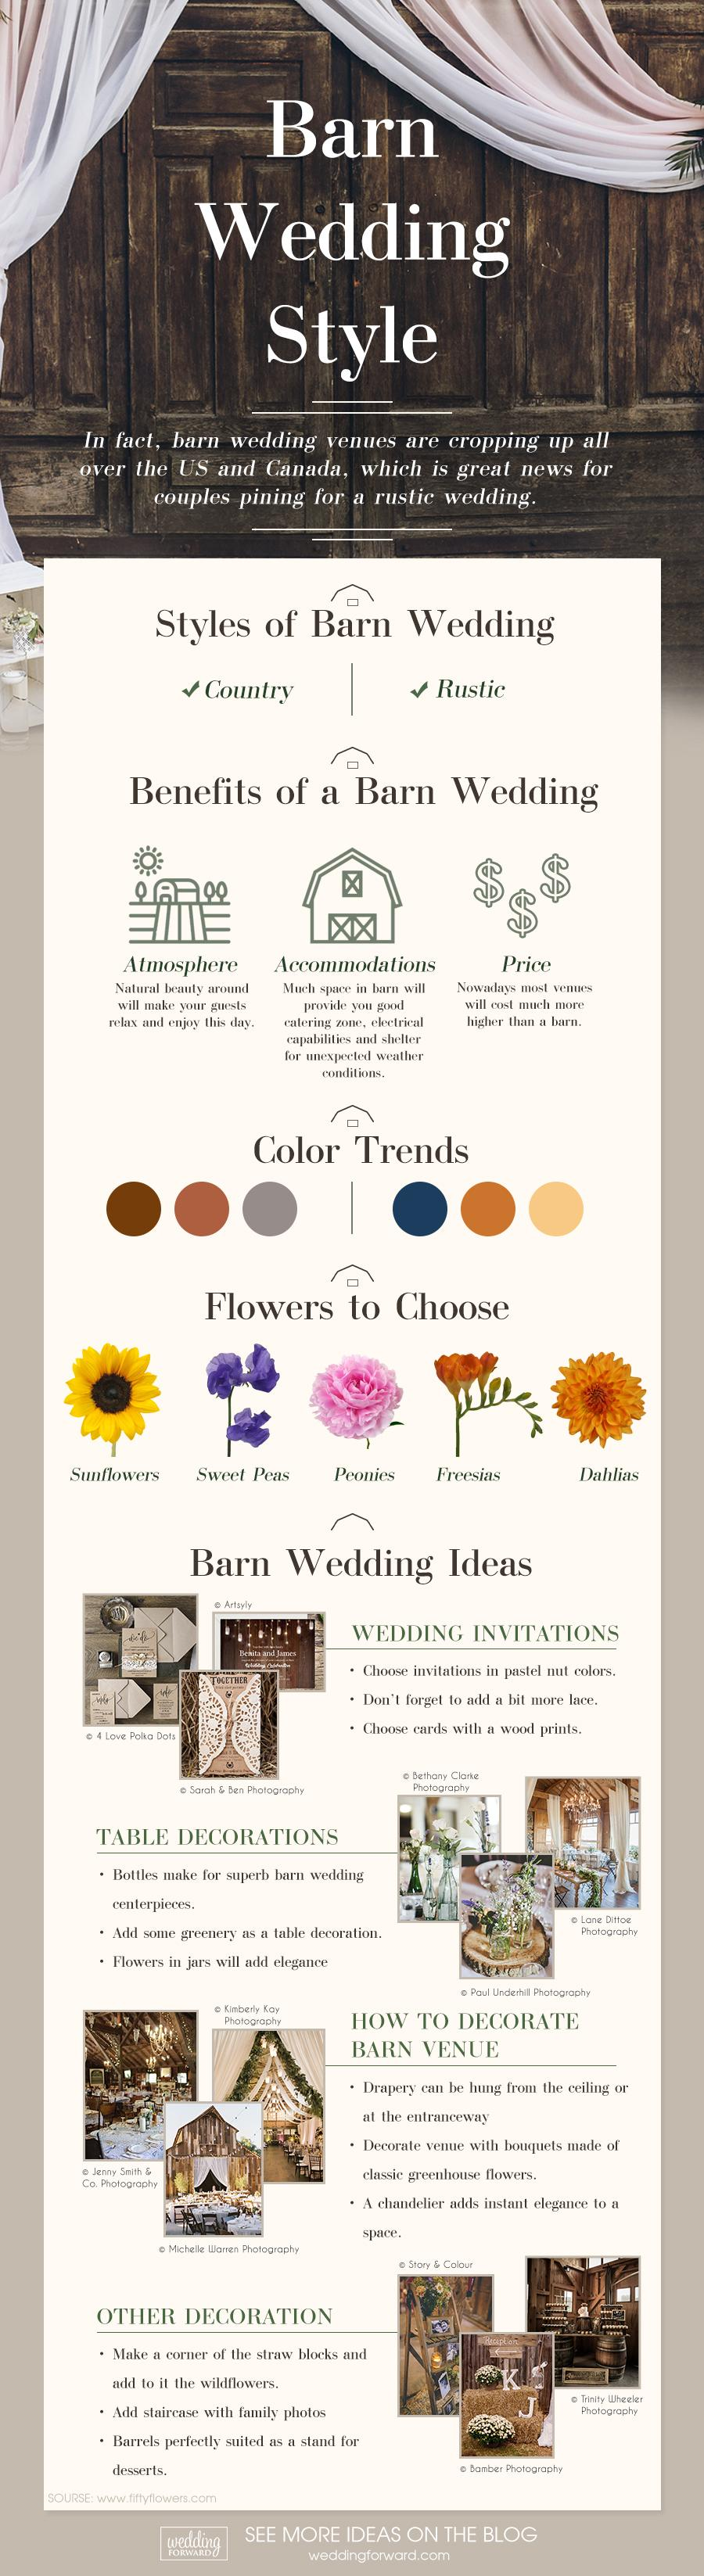 barn wedding infographic